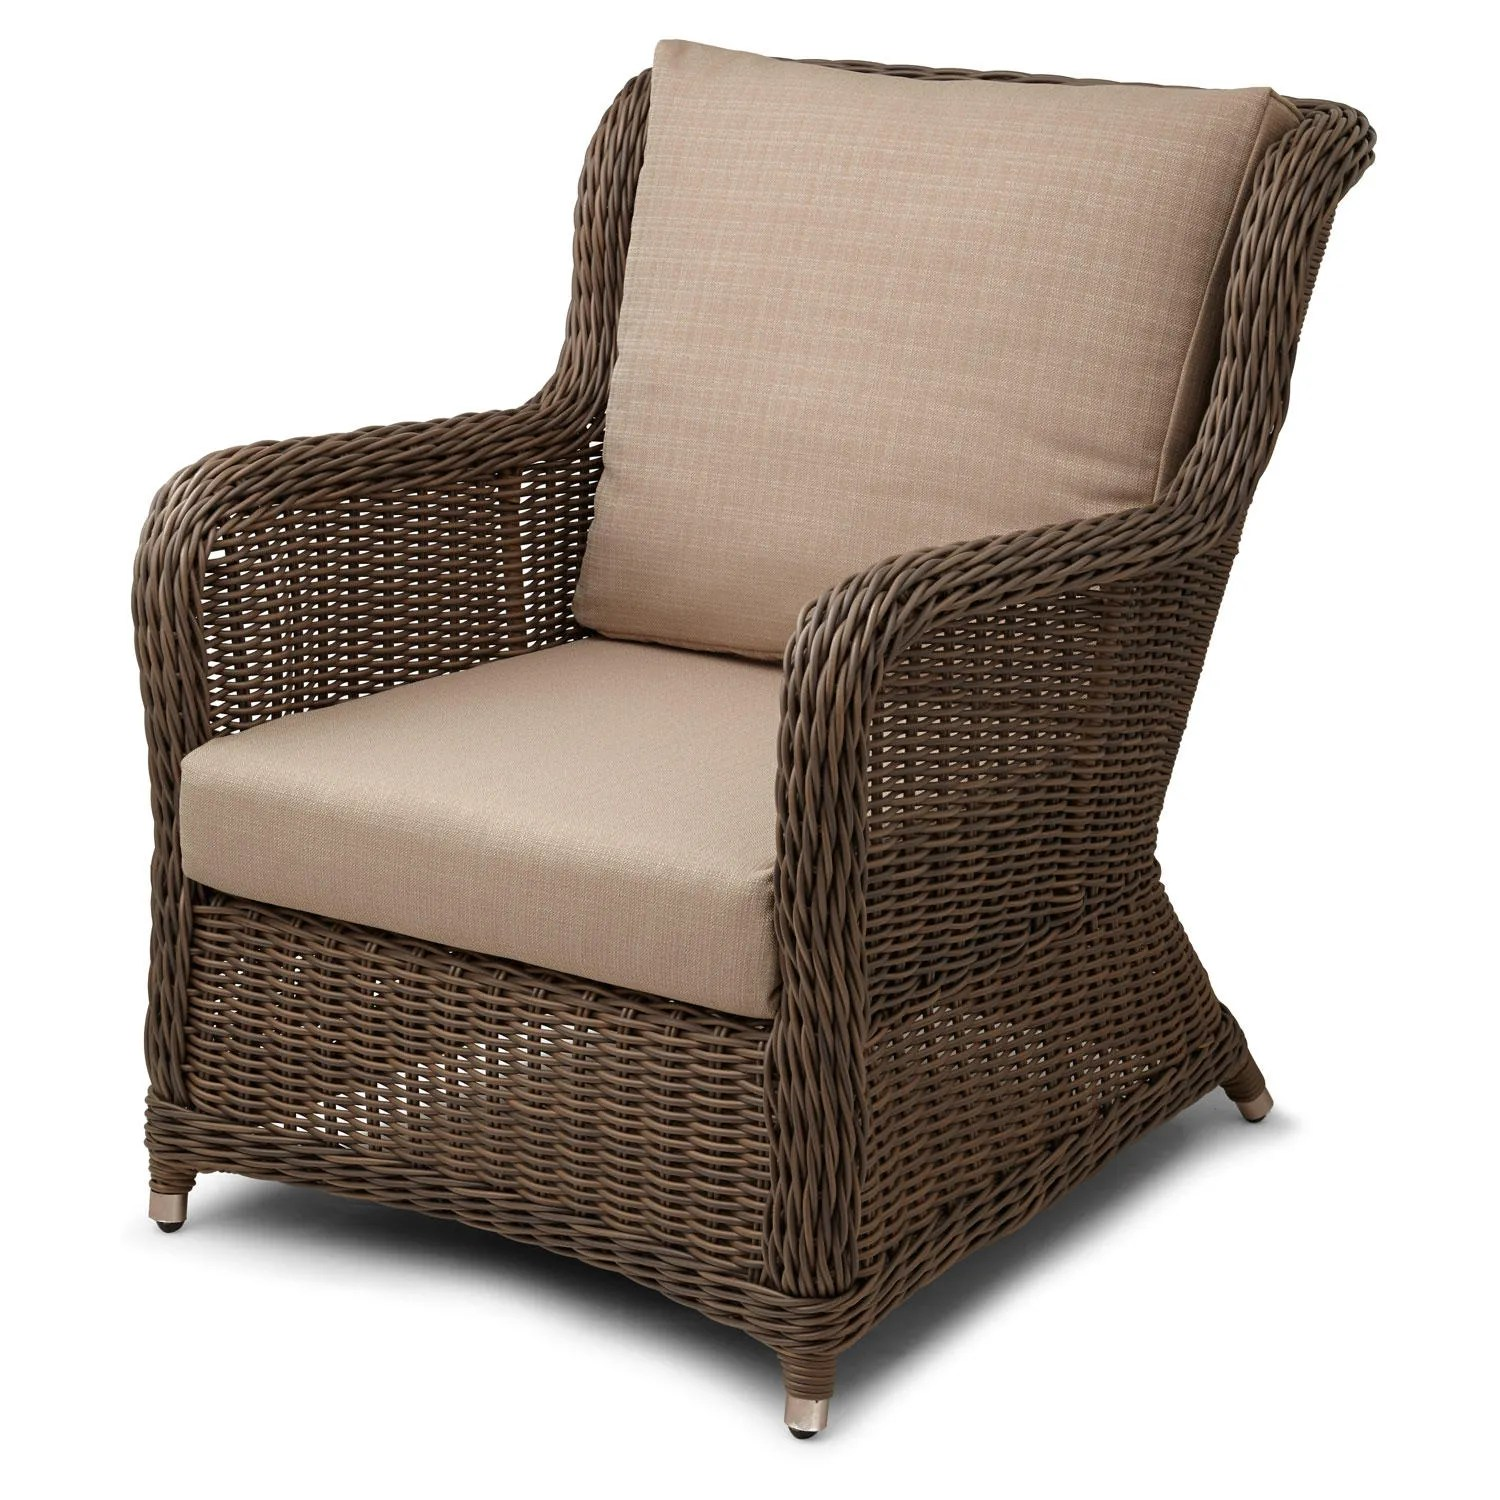 Signature Hardware Alcee Resin Wicker Arm Chair and Cushion  eBay